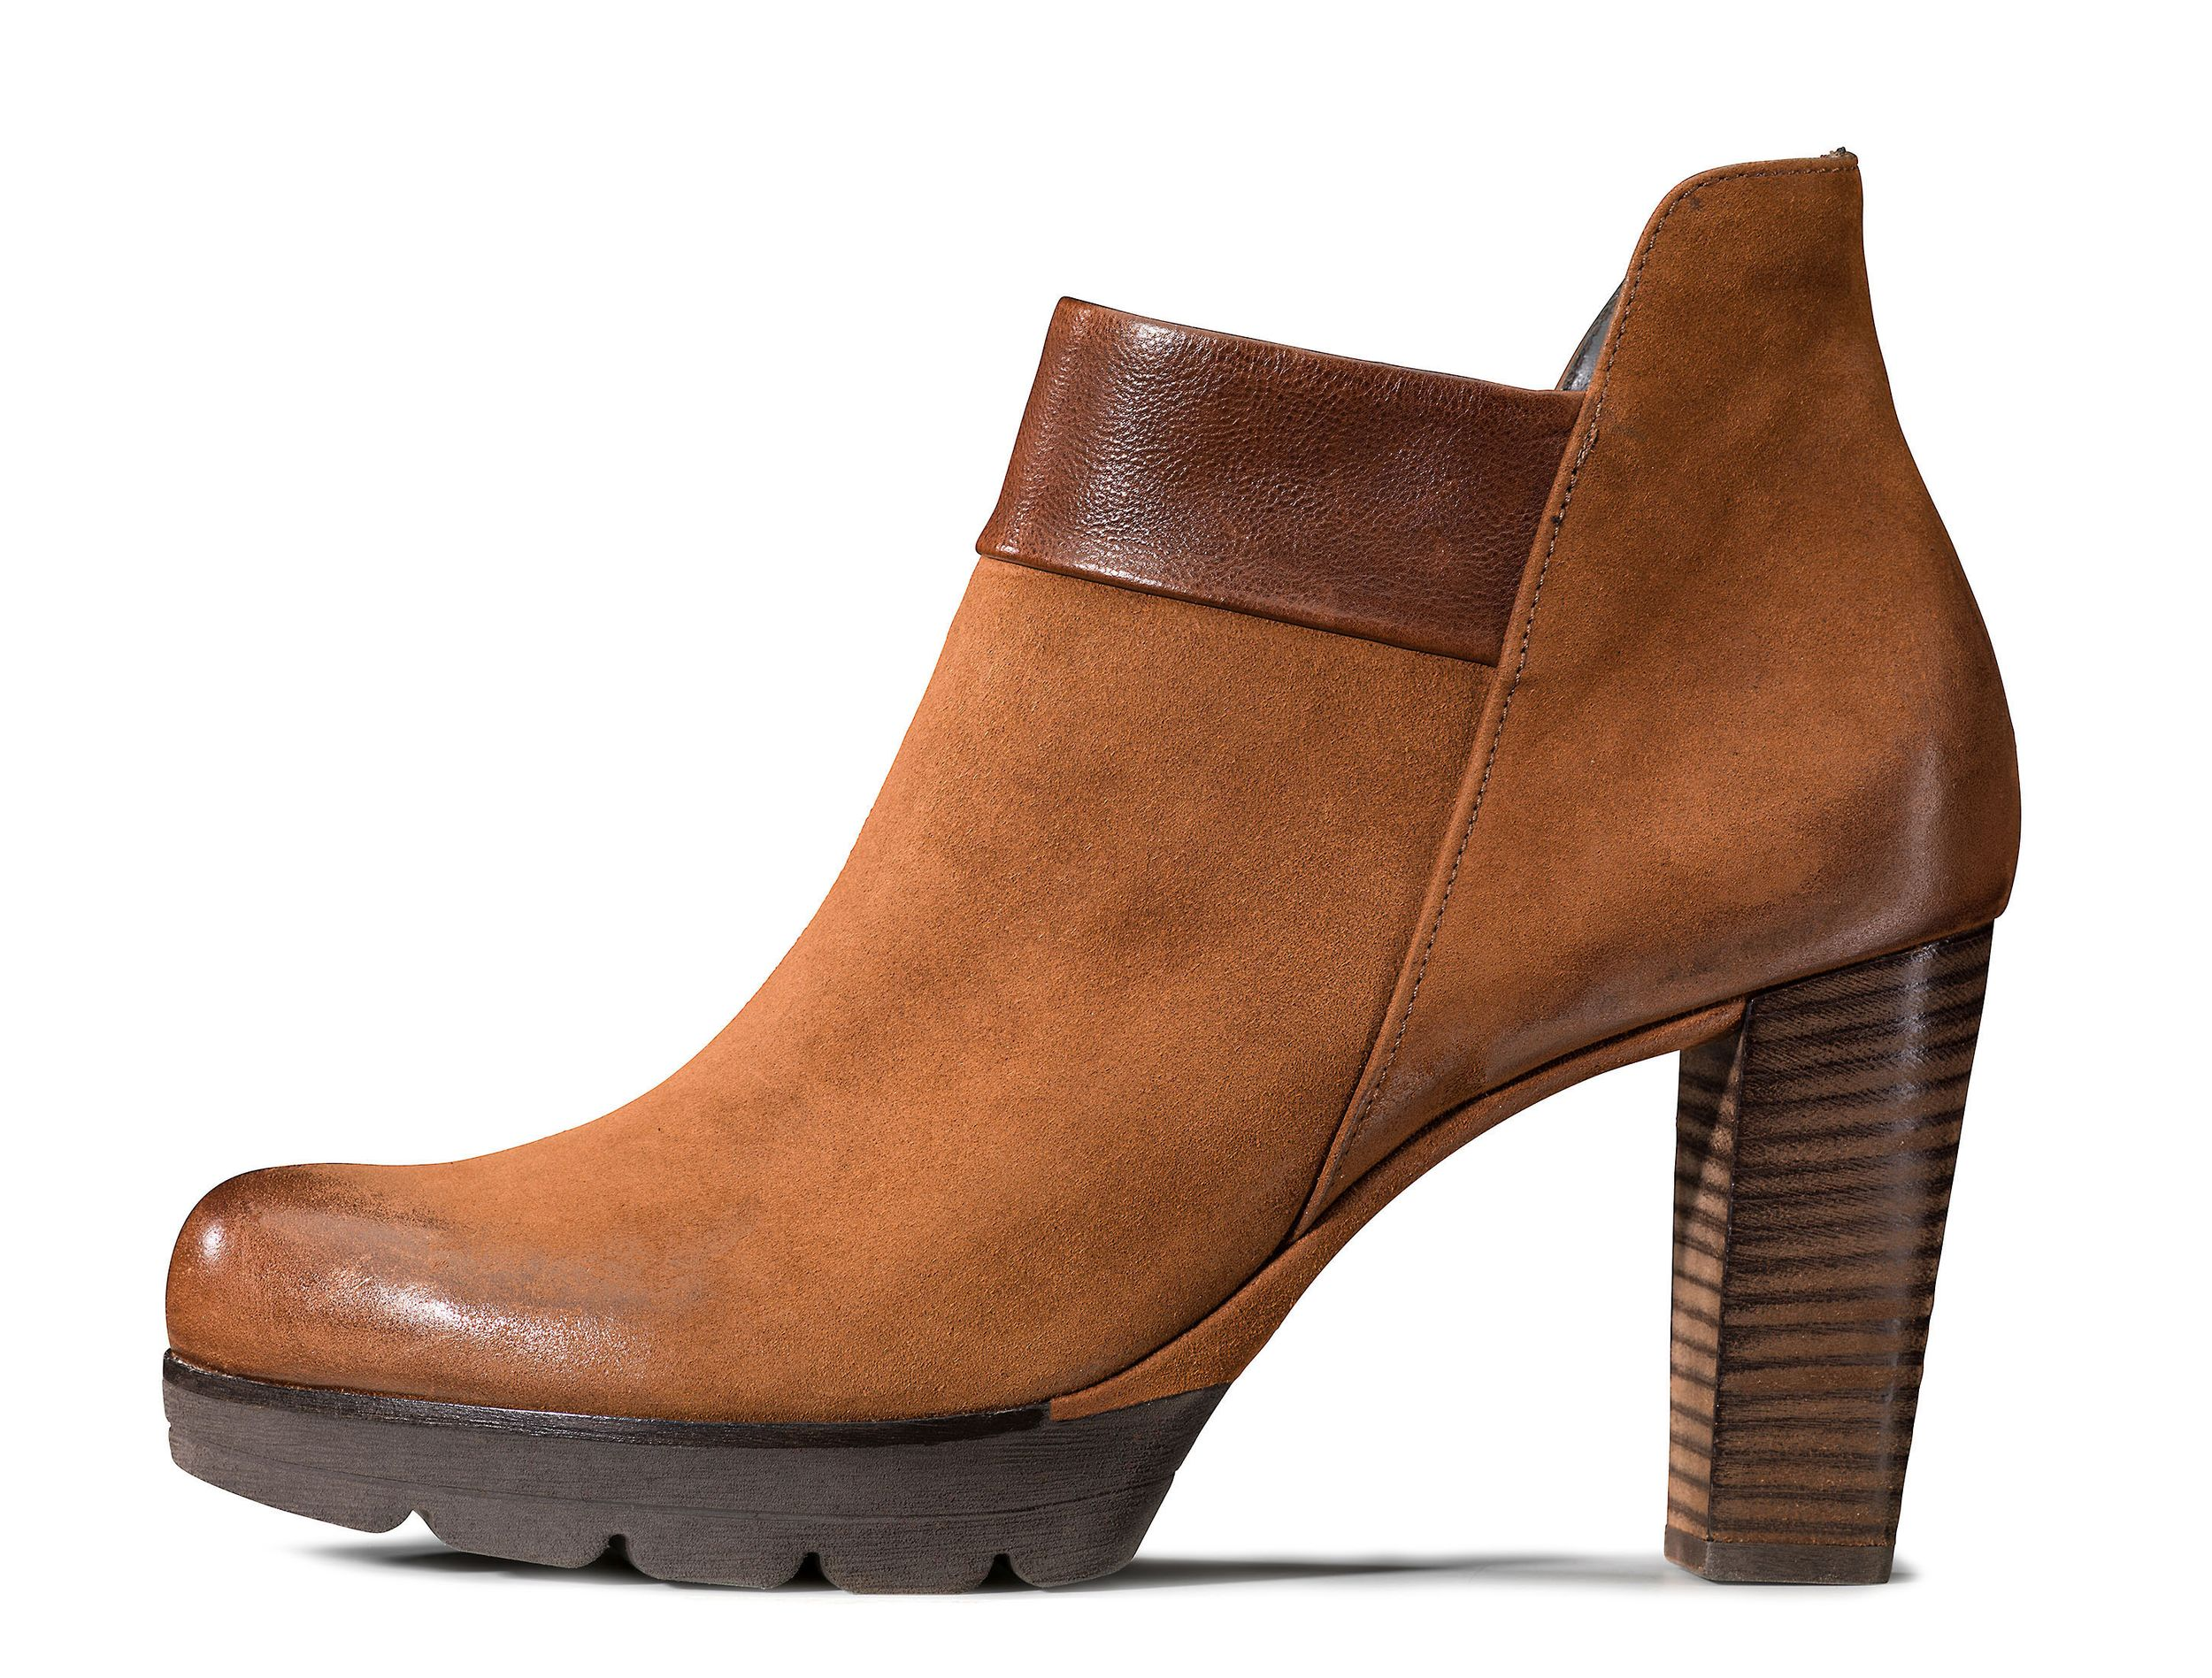 Plateau Ankle Boot In Cognac Brown Paul Green